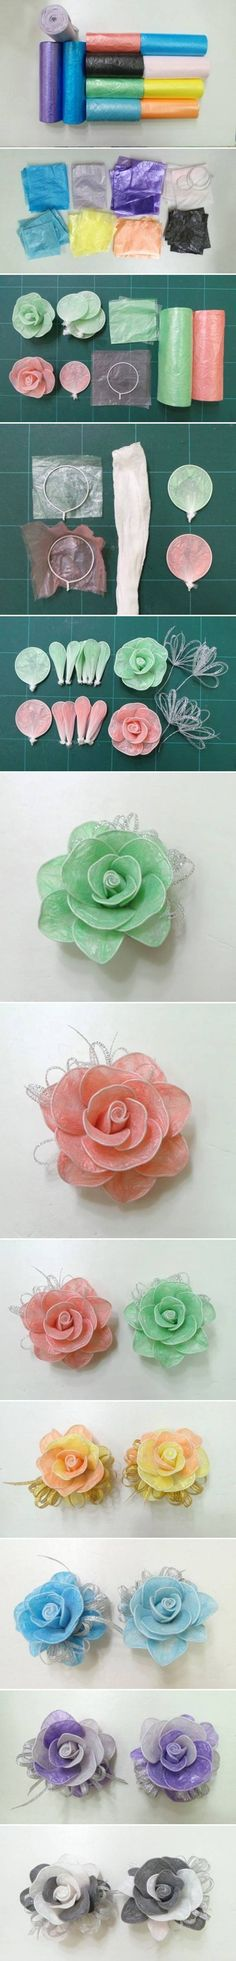 DIY Roses from Plastic Garbage Bags #craft #flower